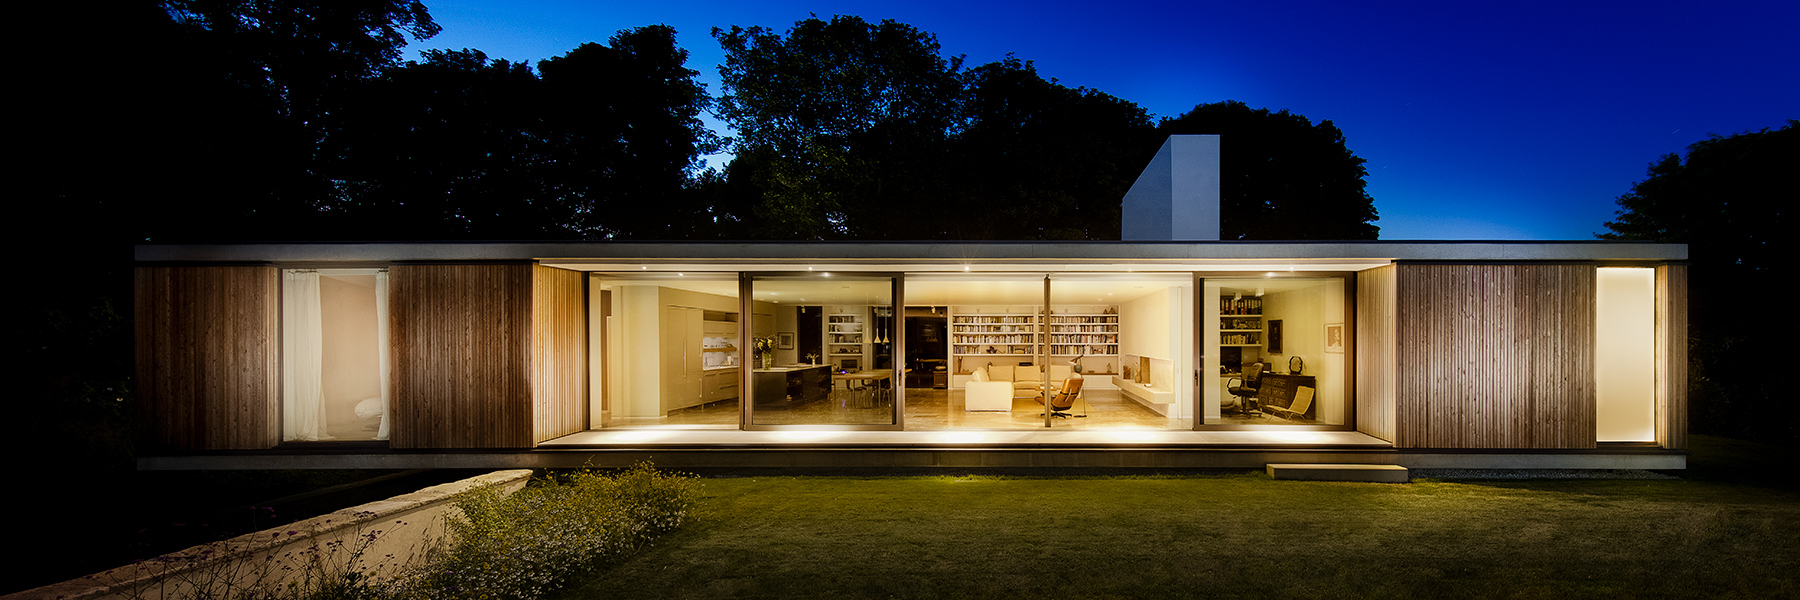 Modern house cantilevers over stone wall in England